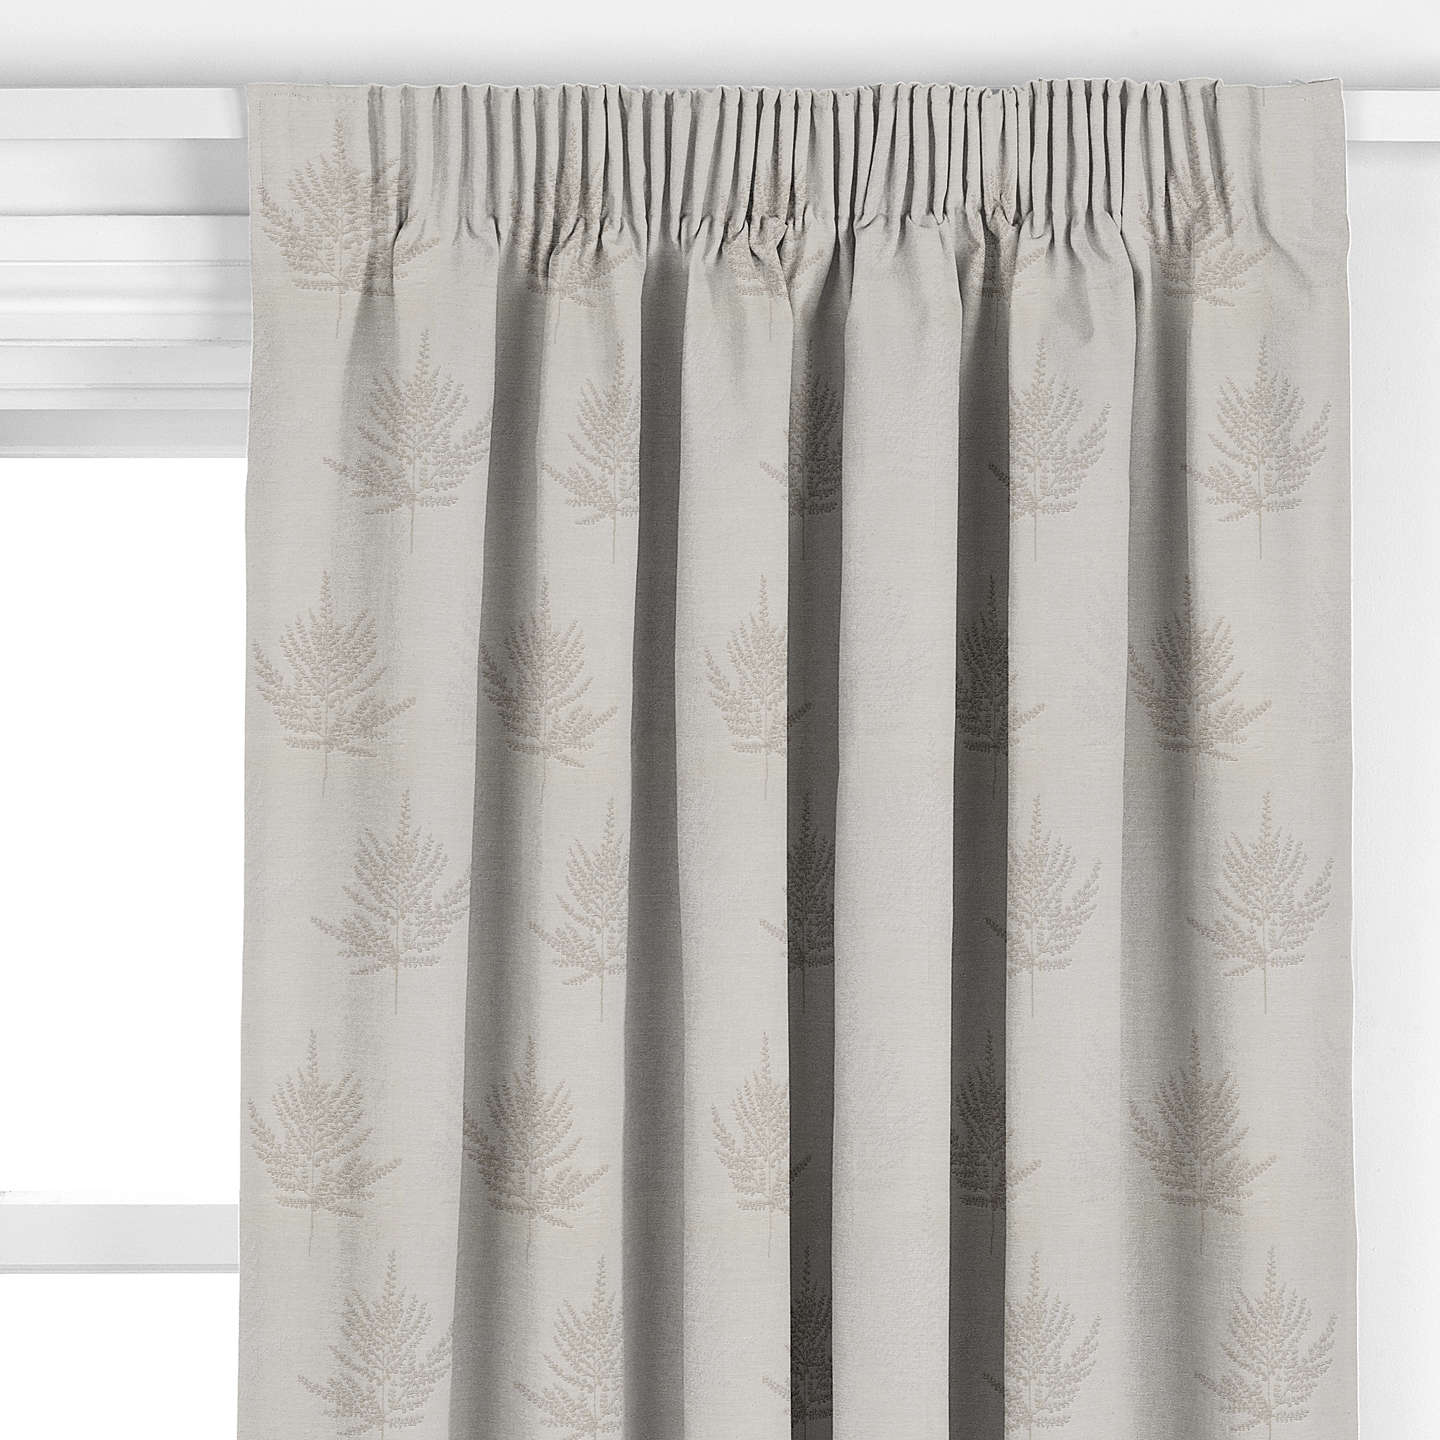 habitat care buy x at linen albany now white of curtains uk curtain instructions pair